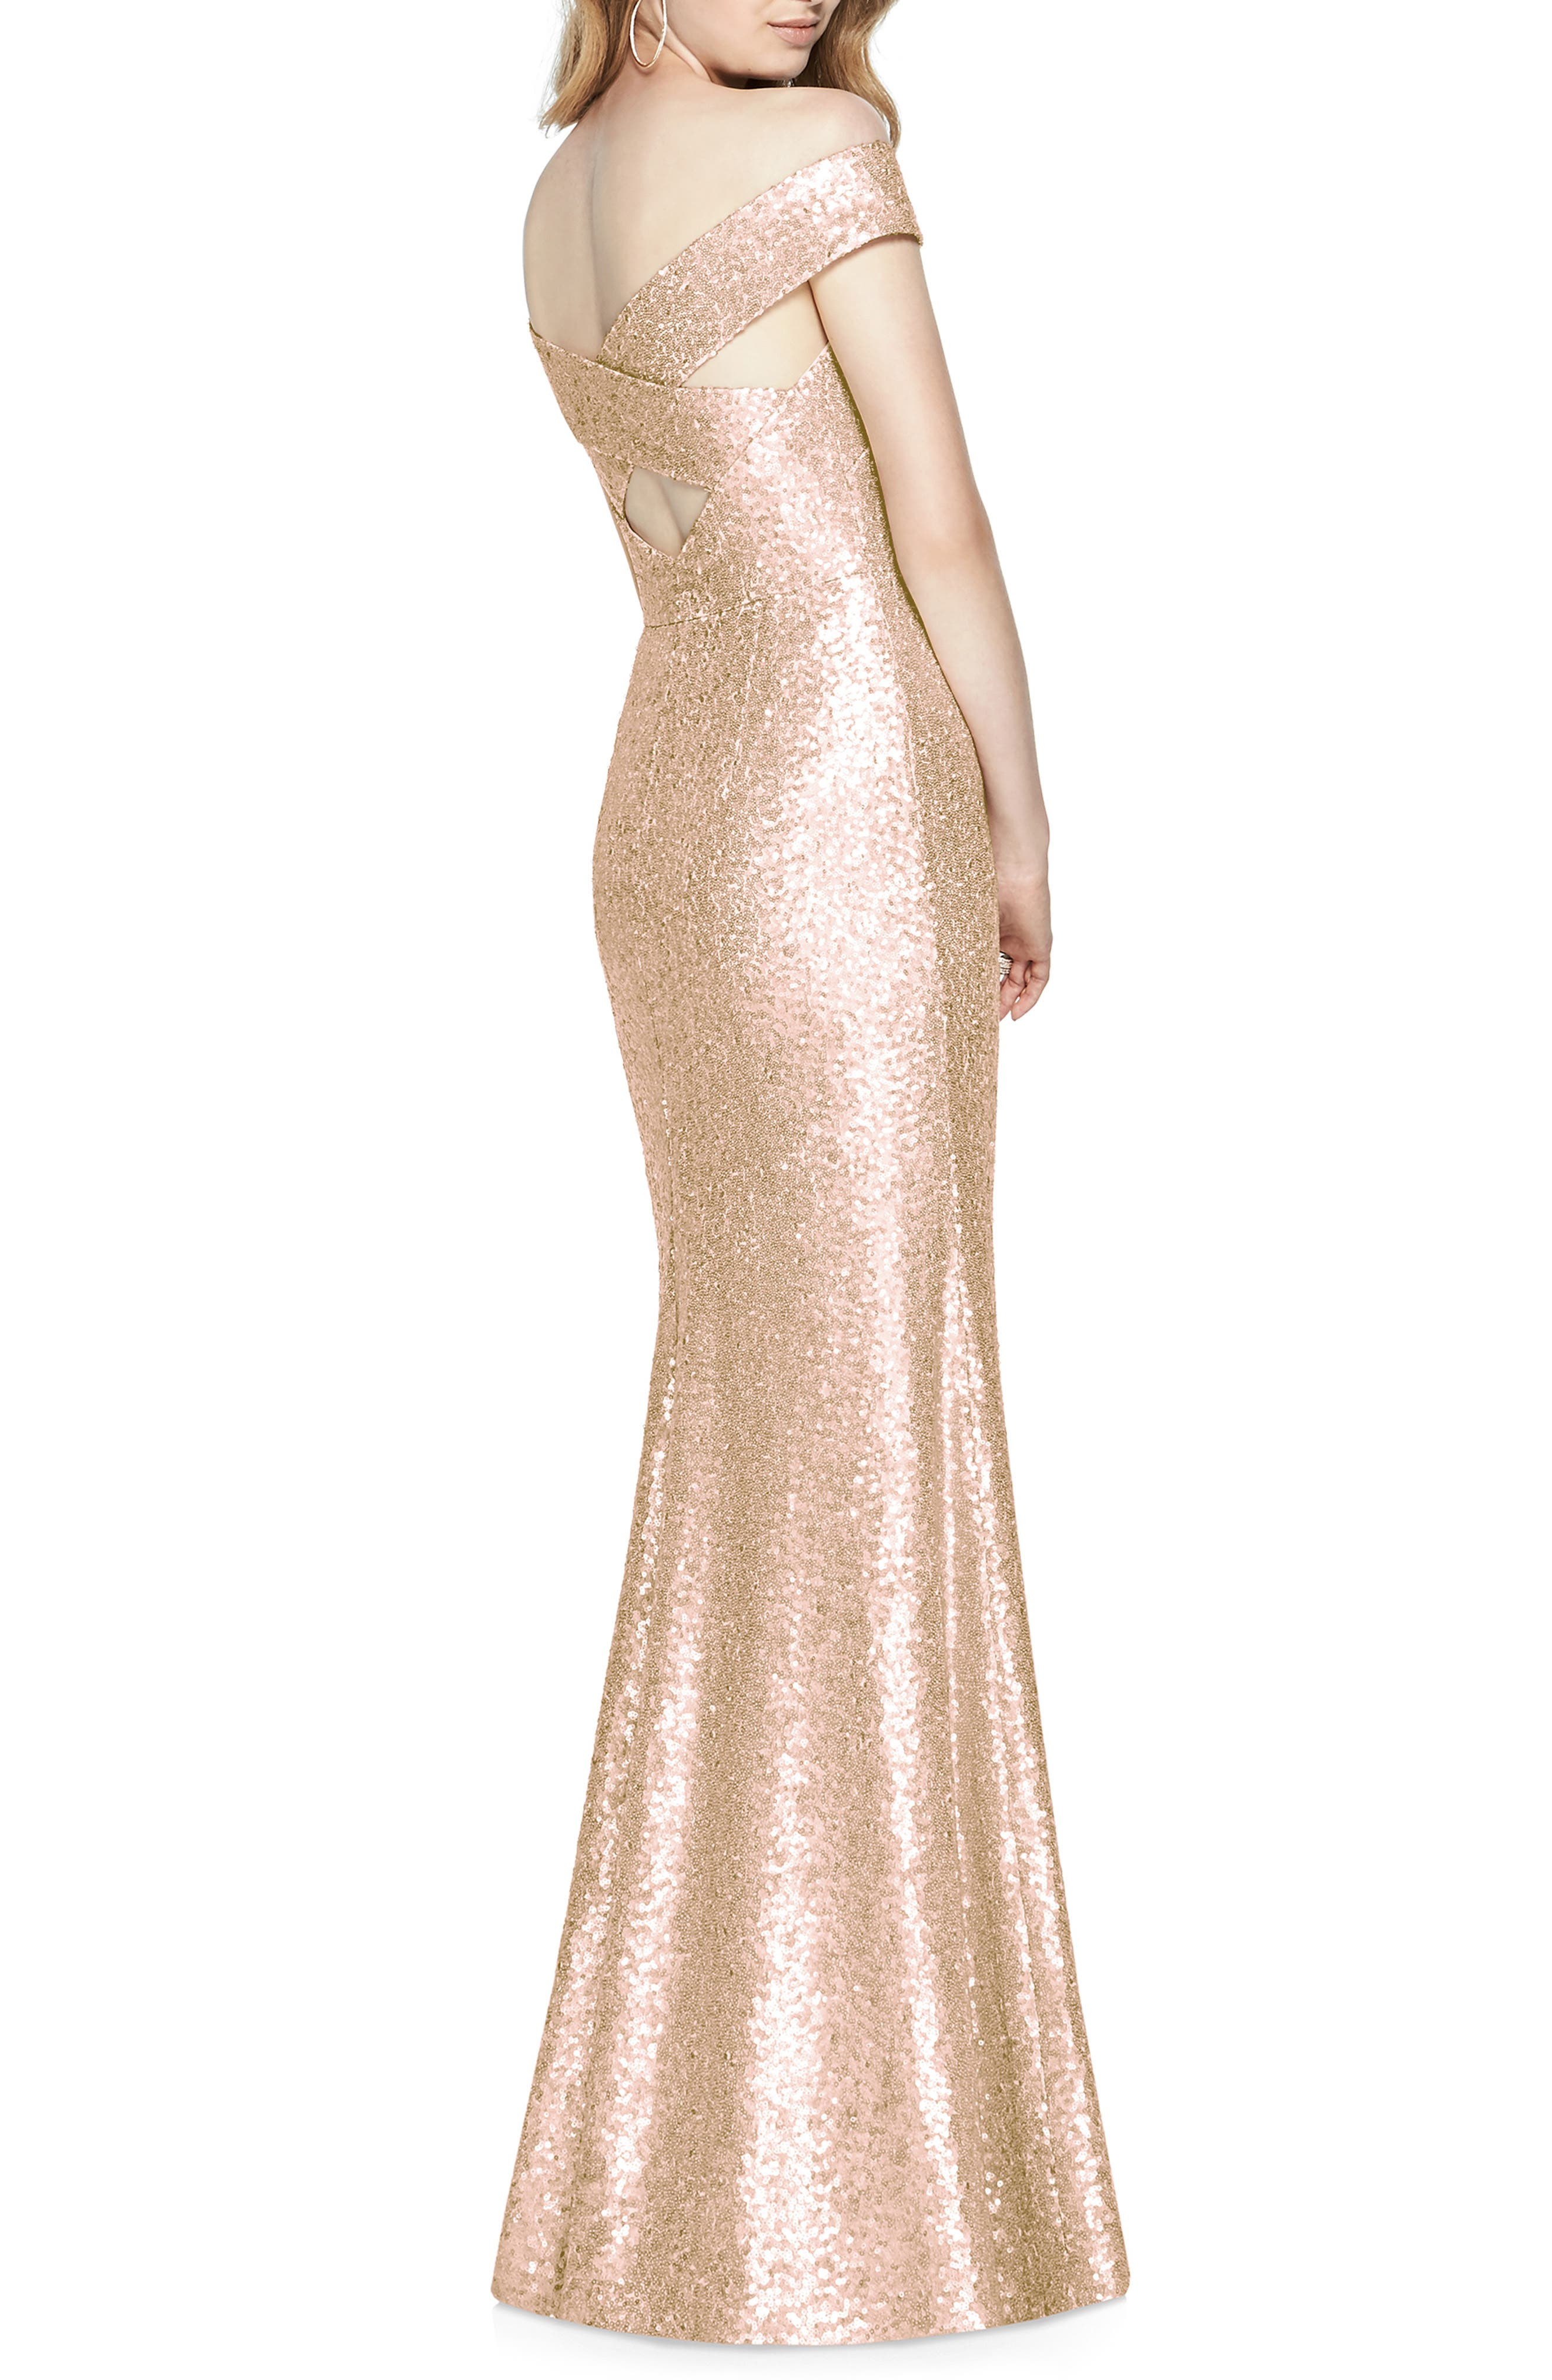 DESSY COLLECTION, Sequin Off the Shoulder Gown, Alternate thumbnail 2, color, ROSE GOLD